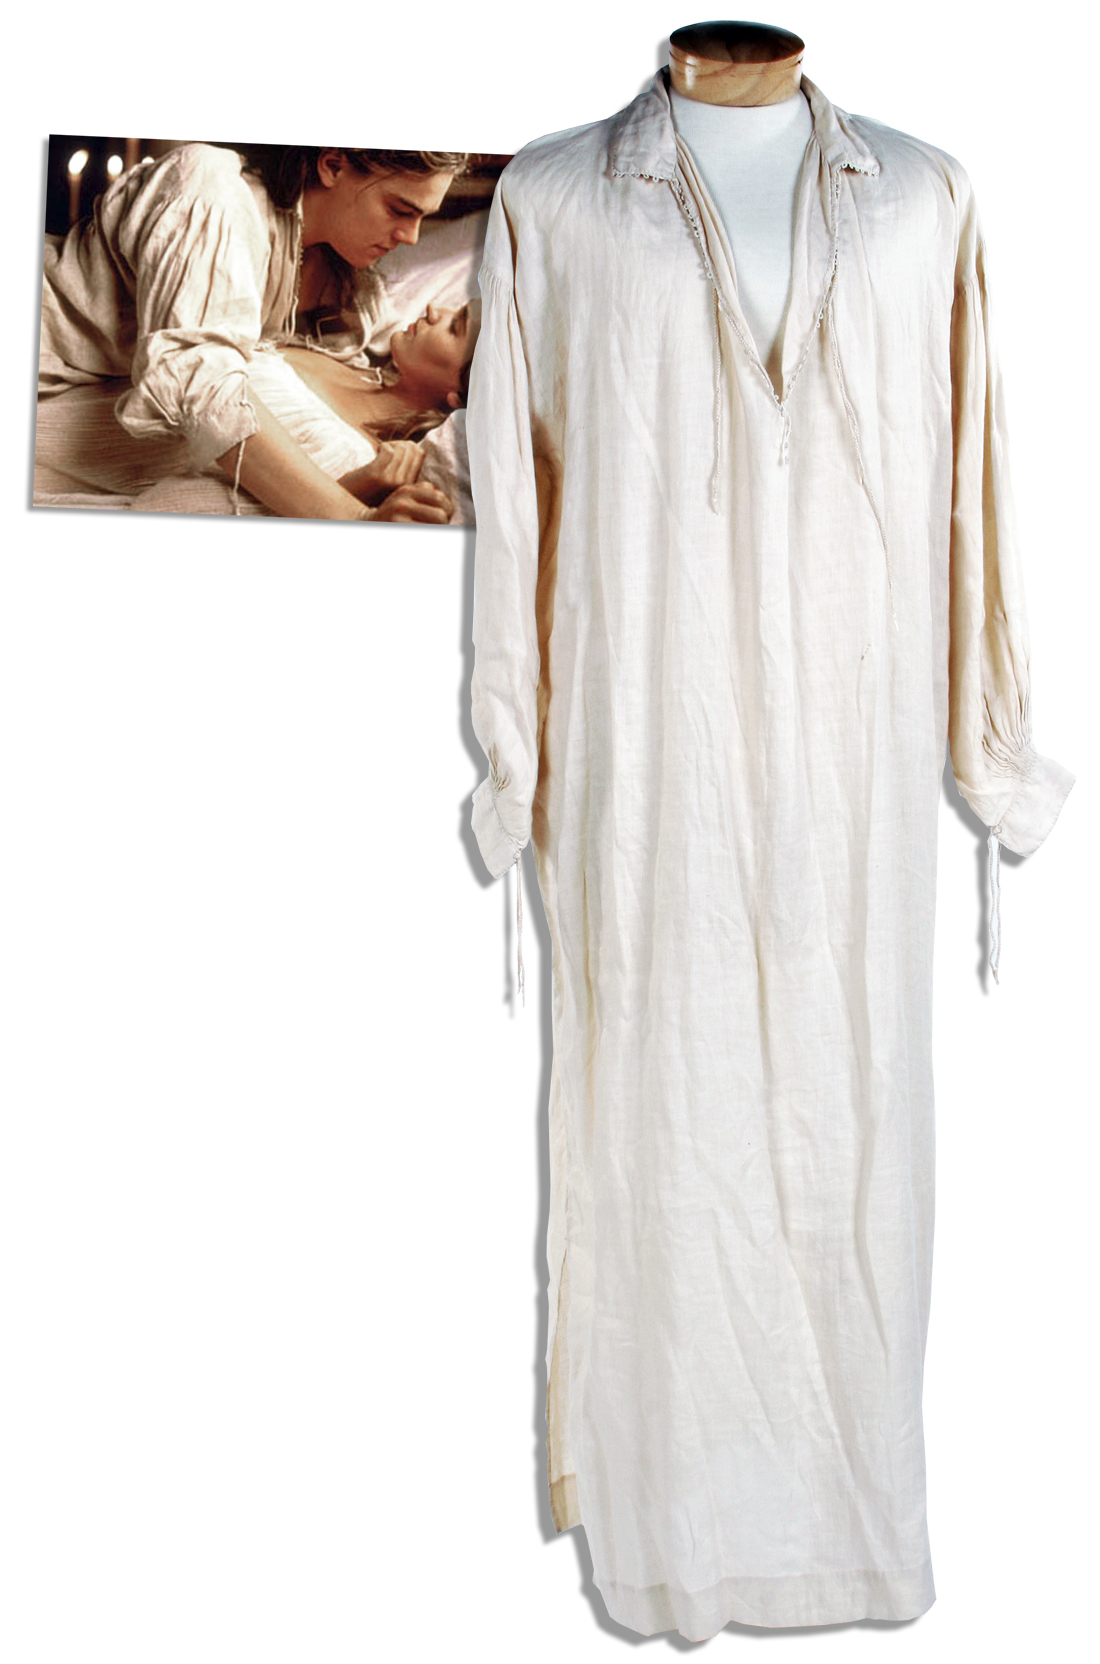 Awesome Night Gowns For Men Composition - Wedding and flowers ...